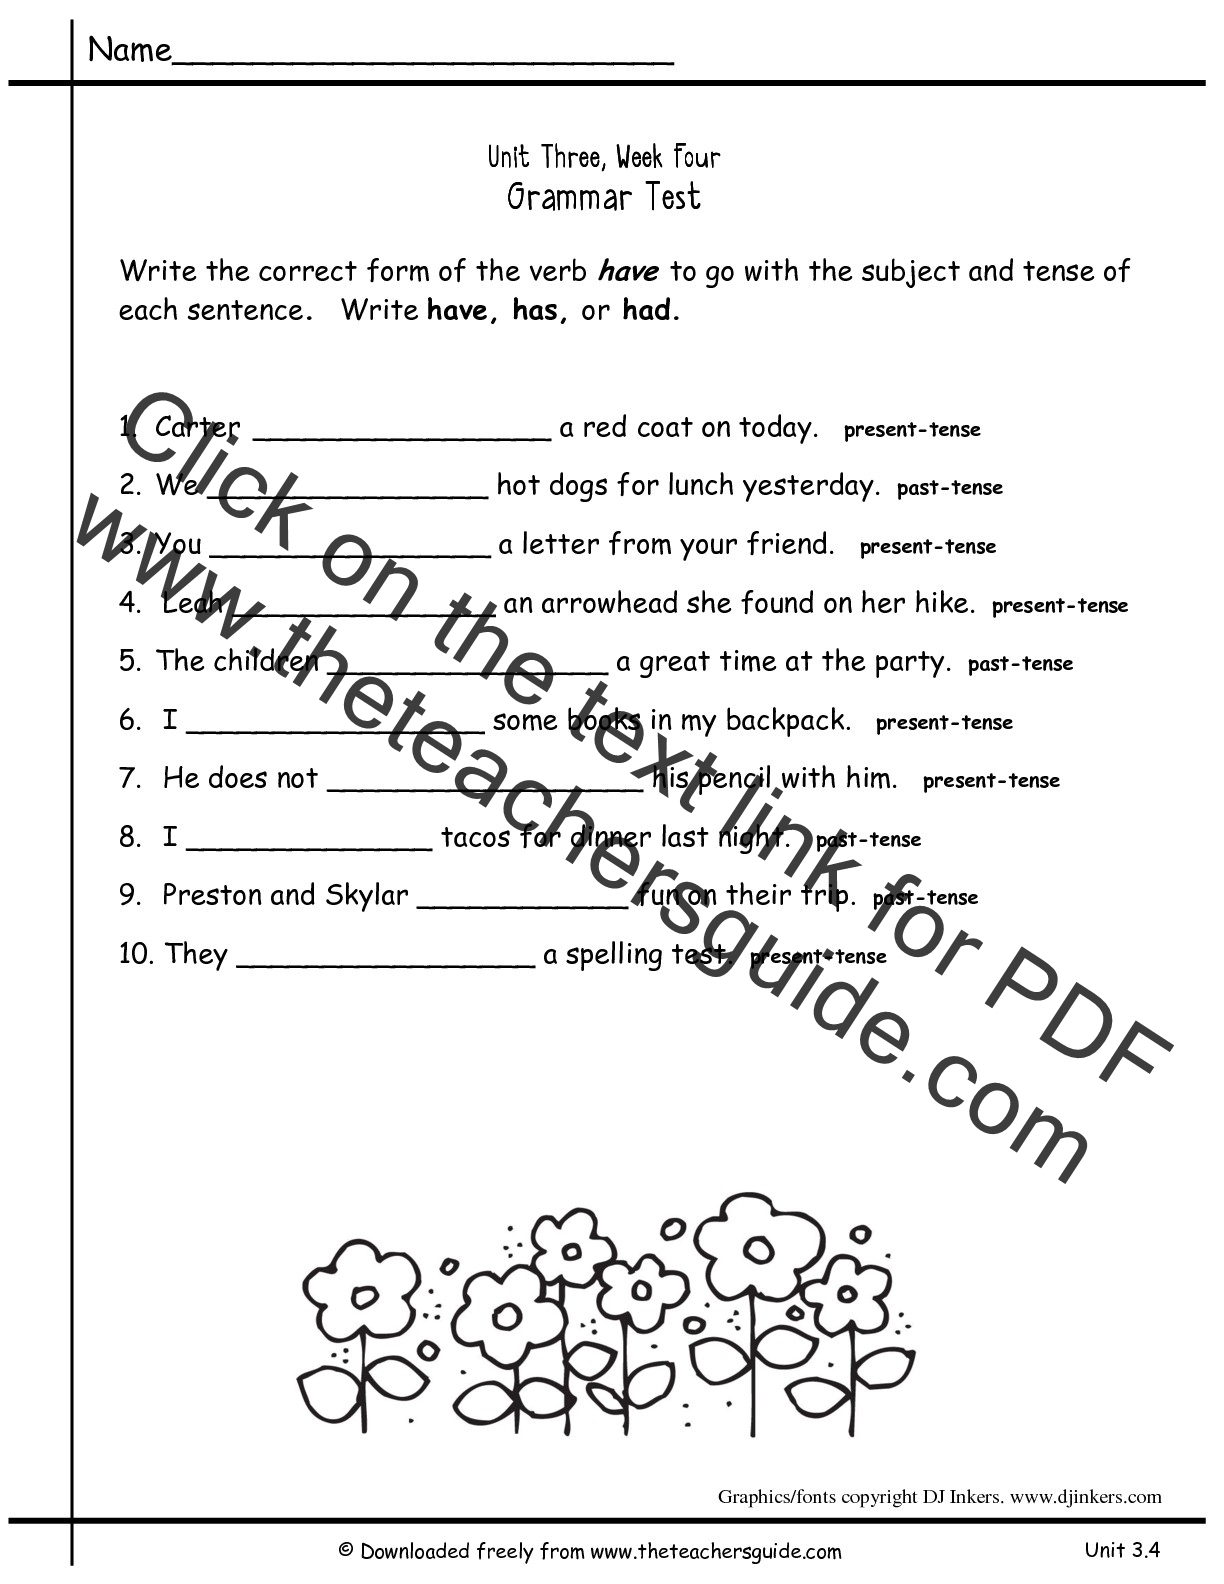 Worksheet Verb Worksheets For 2nd Grade Grass Fedjp Worksheet Study Site